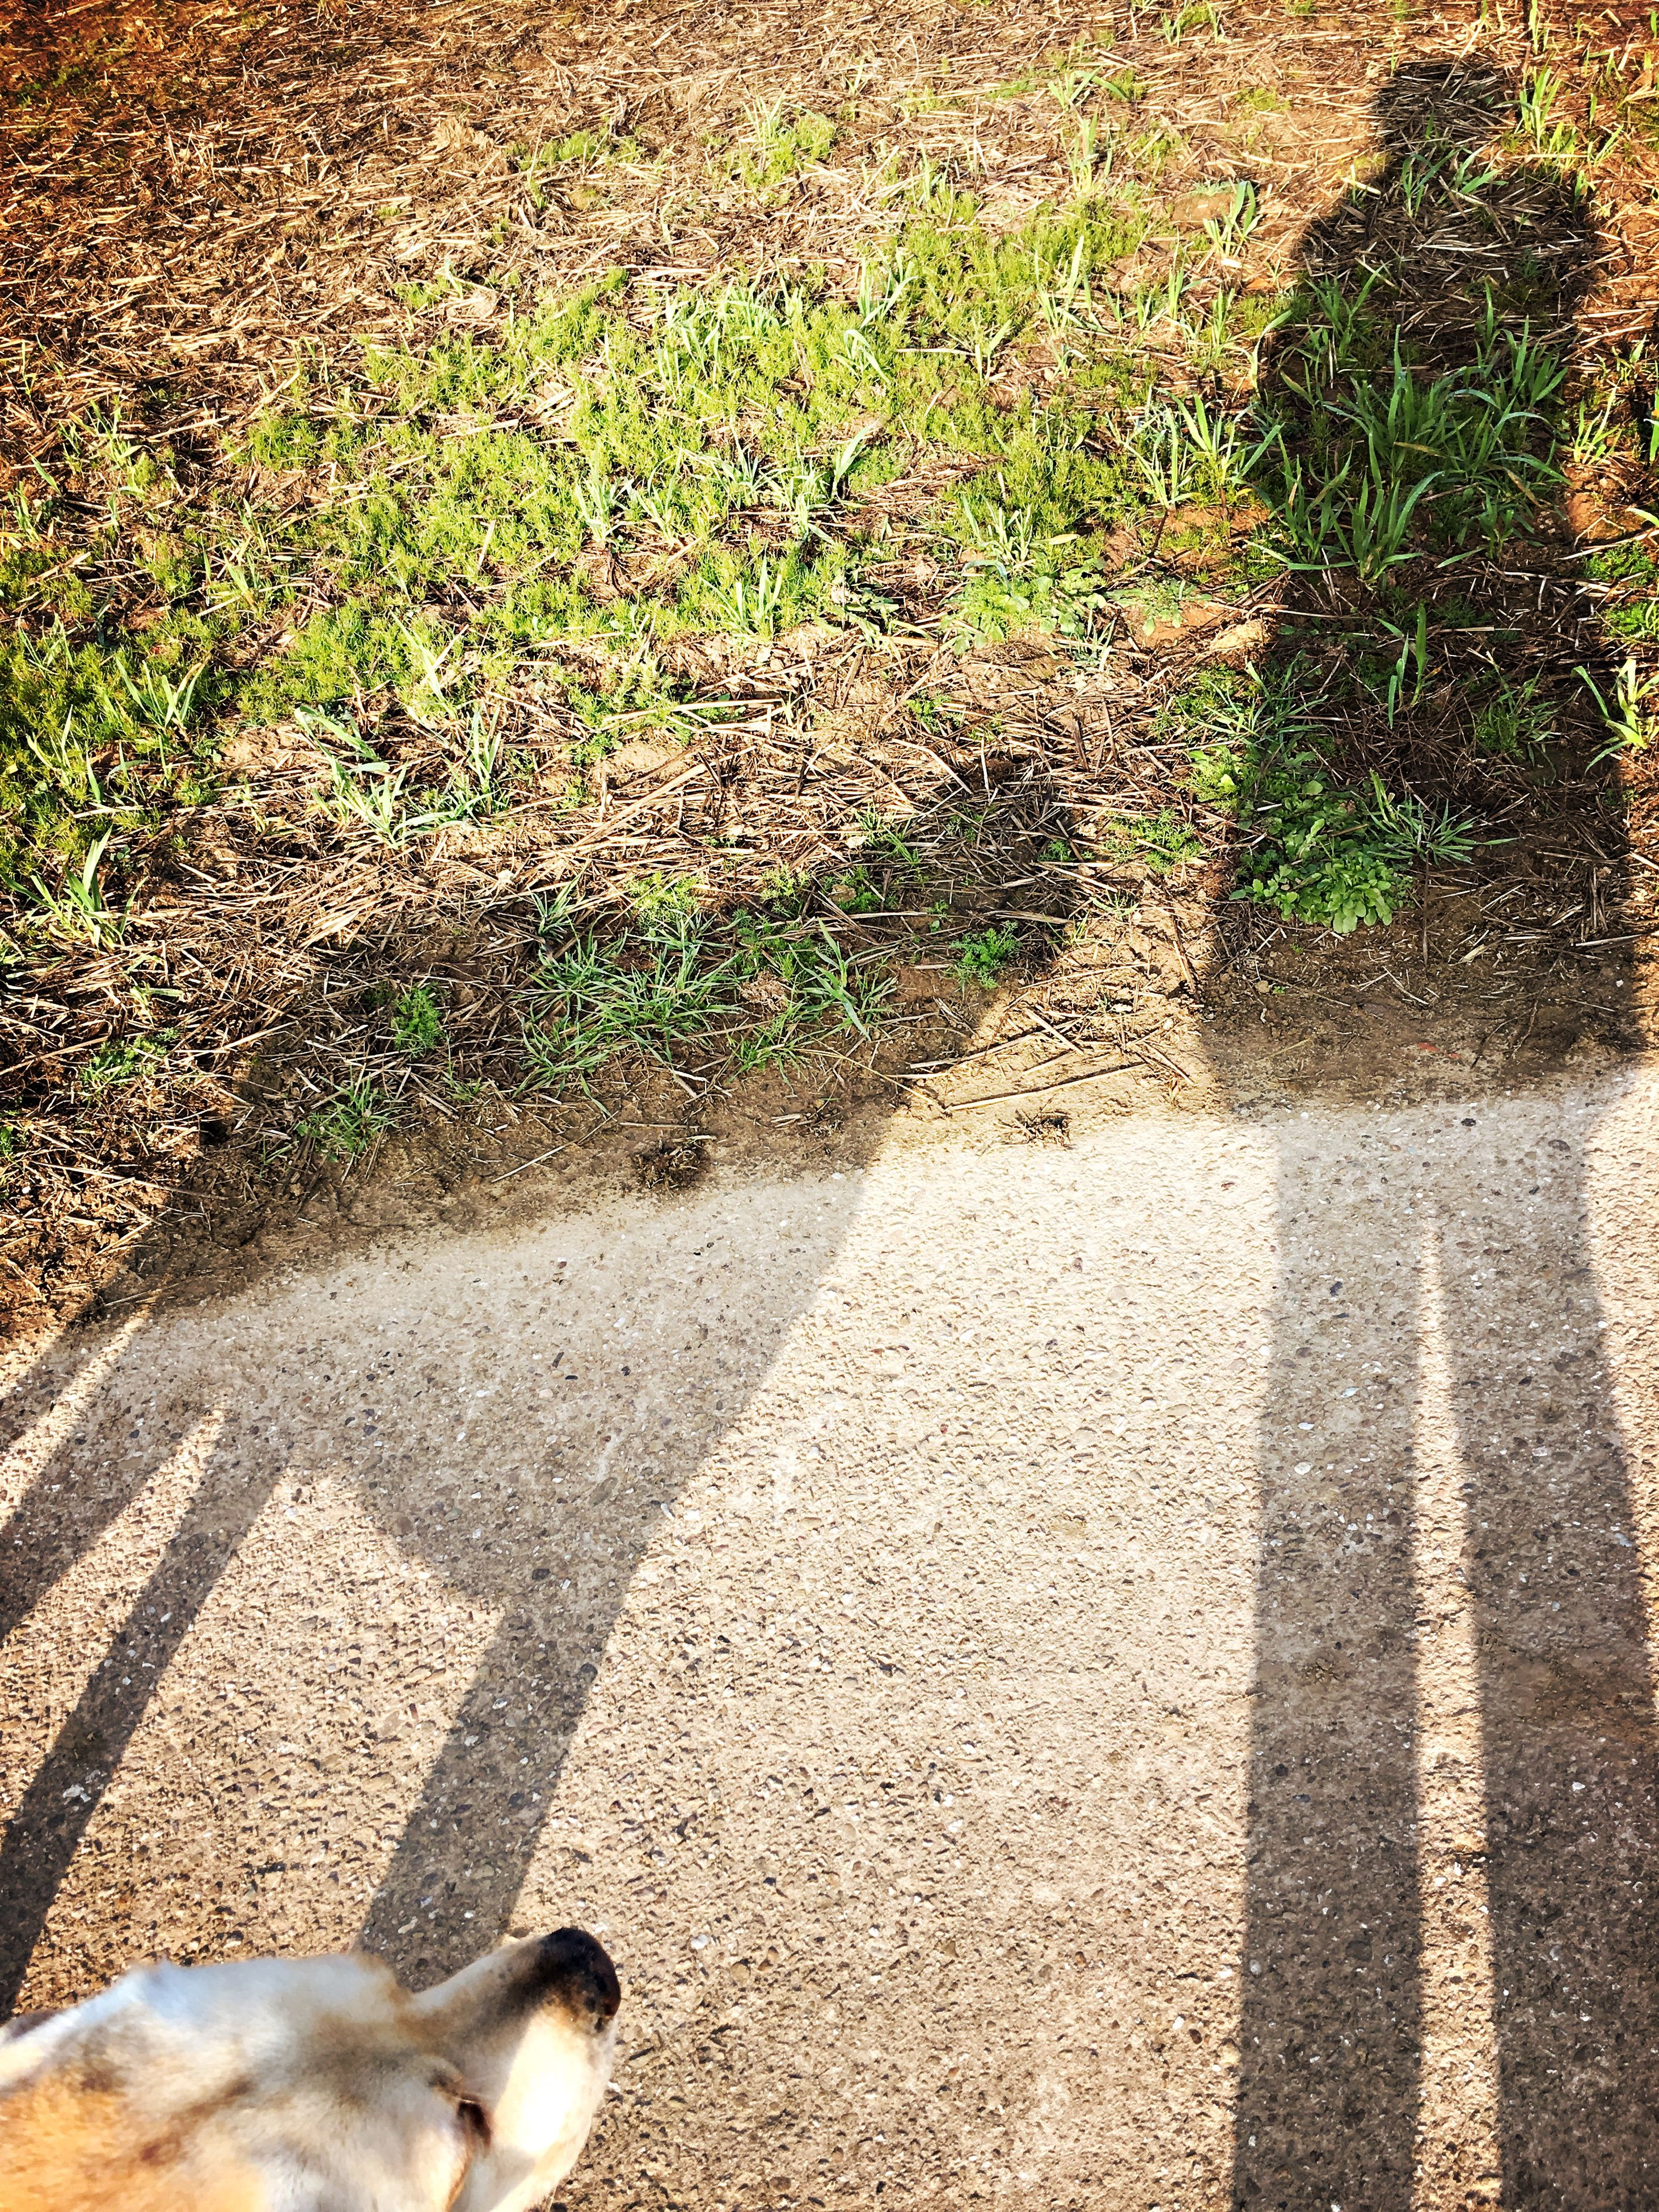 high angle view, domestic animals, shadow, pets, sunlight, animal themes, dog, mammal, one animal, street, grass, footpath, outdoors, day, low section, no people, field, unrecognizable person, road, nature